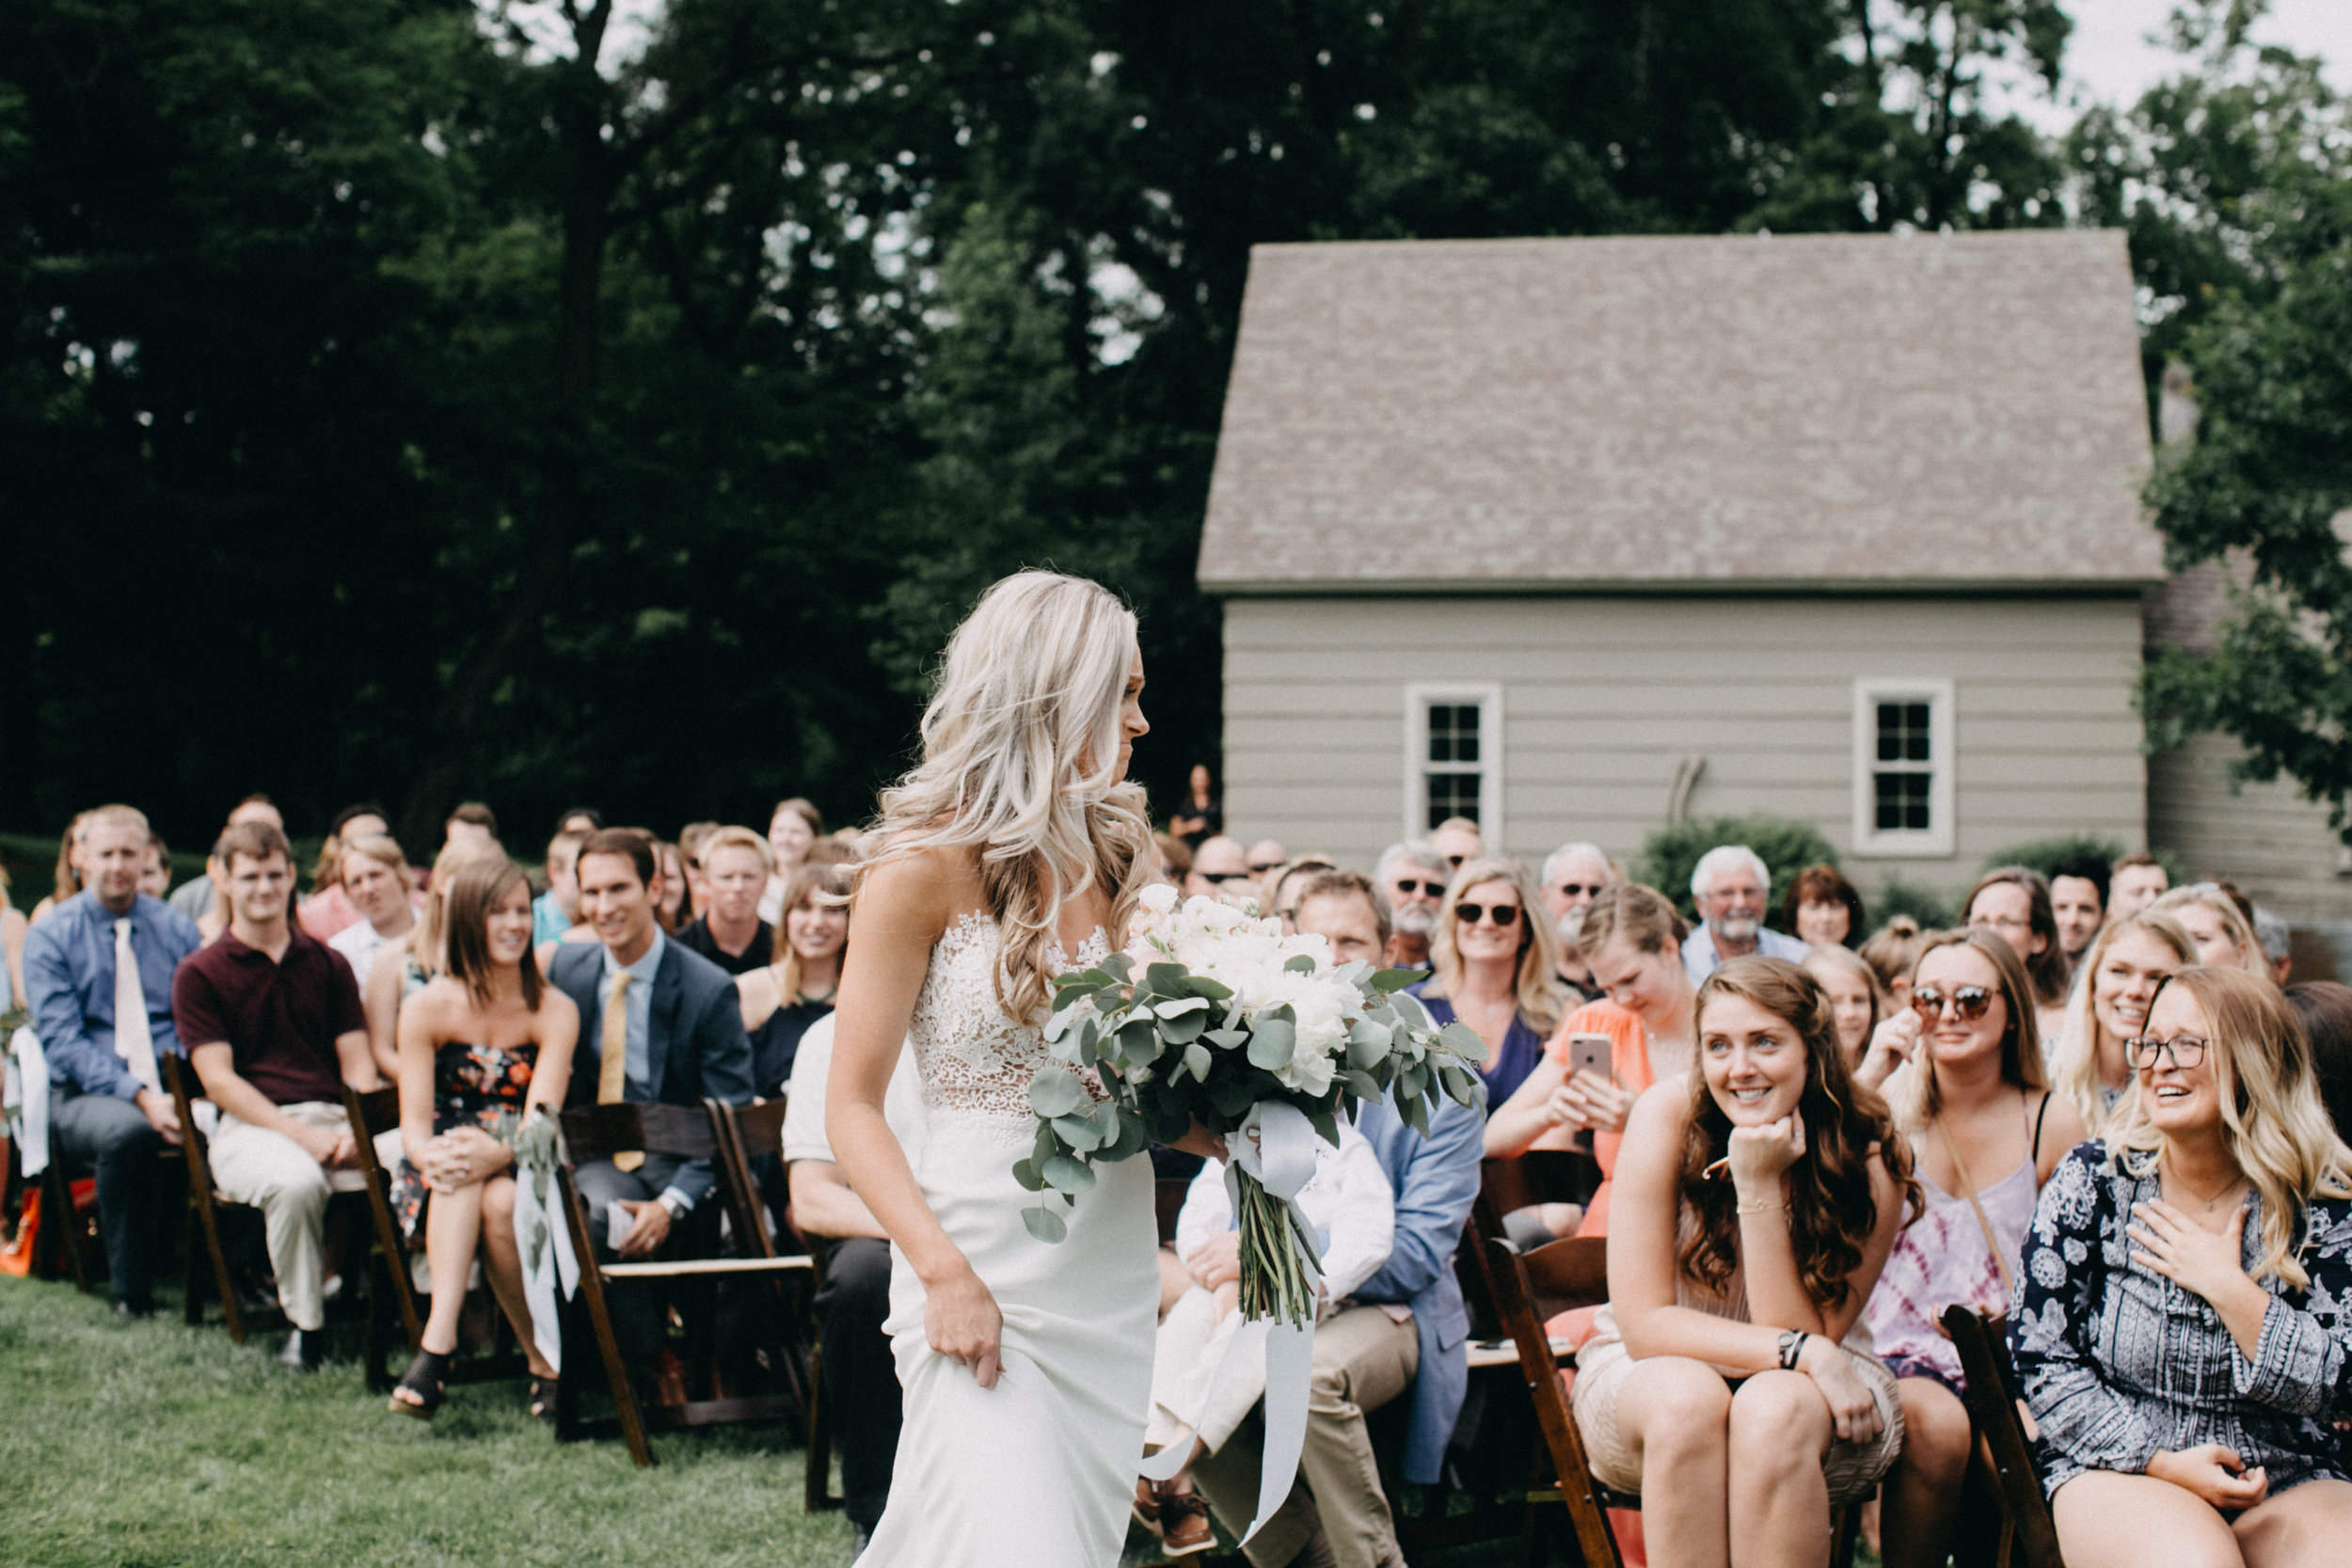 Emotional bride during wedding ceremony at Creekside Farm in Rush City by Britt DeZeeuw